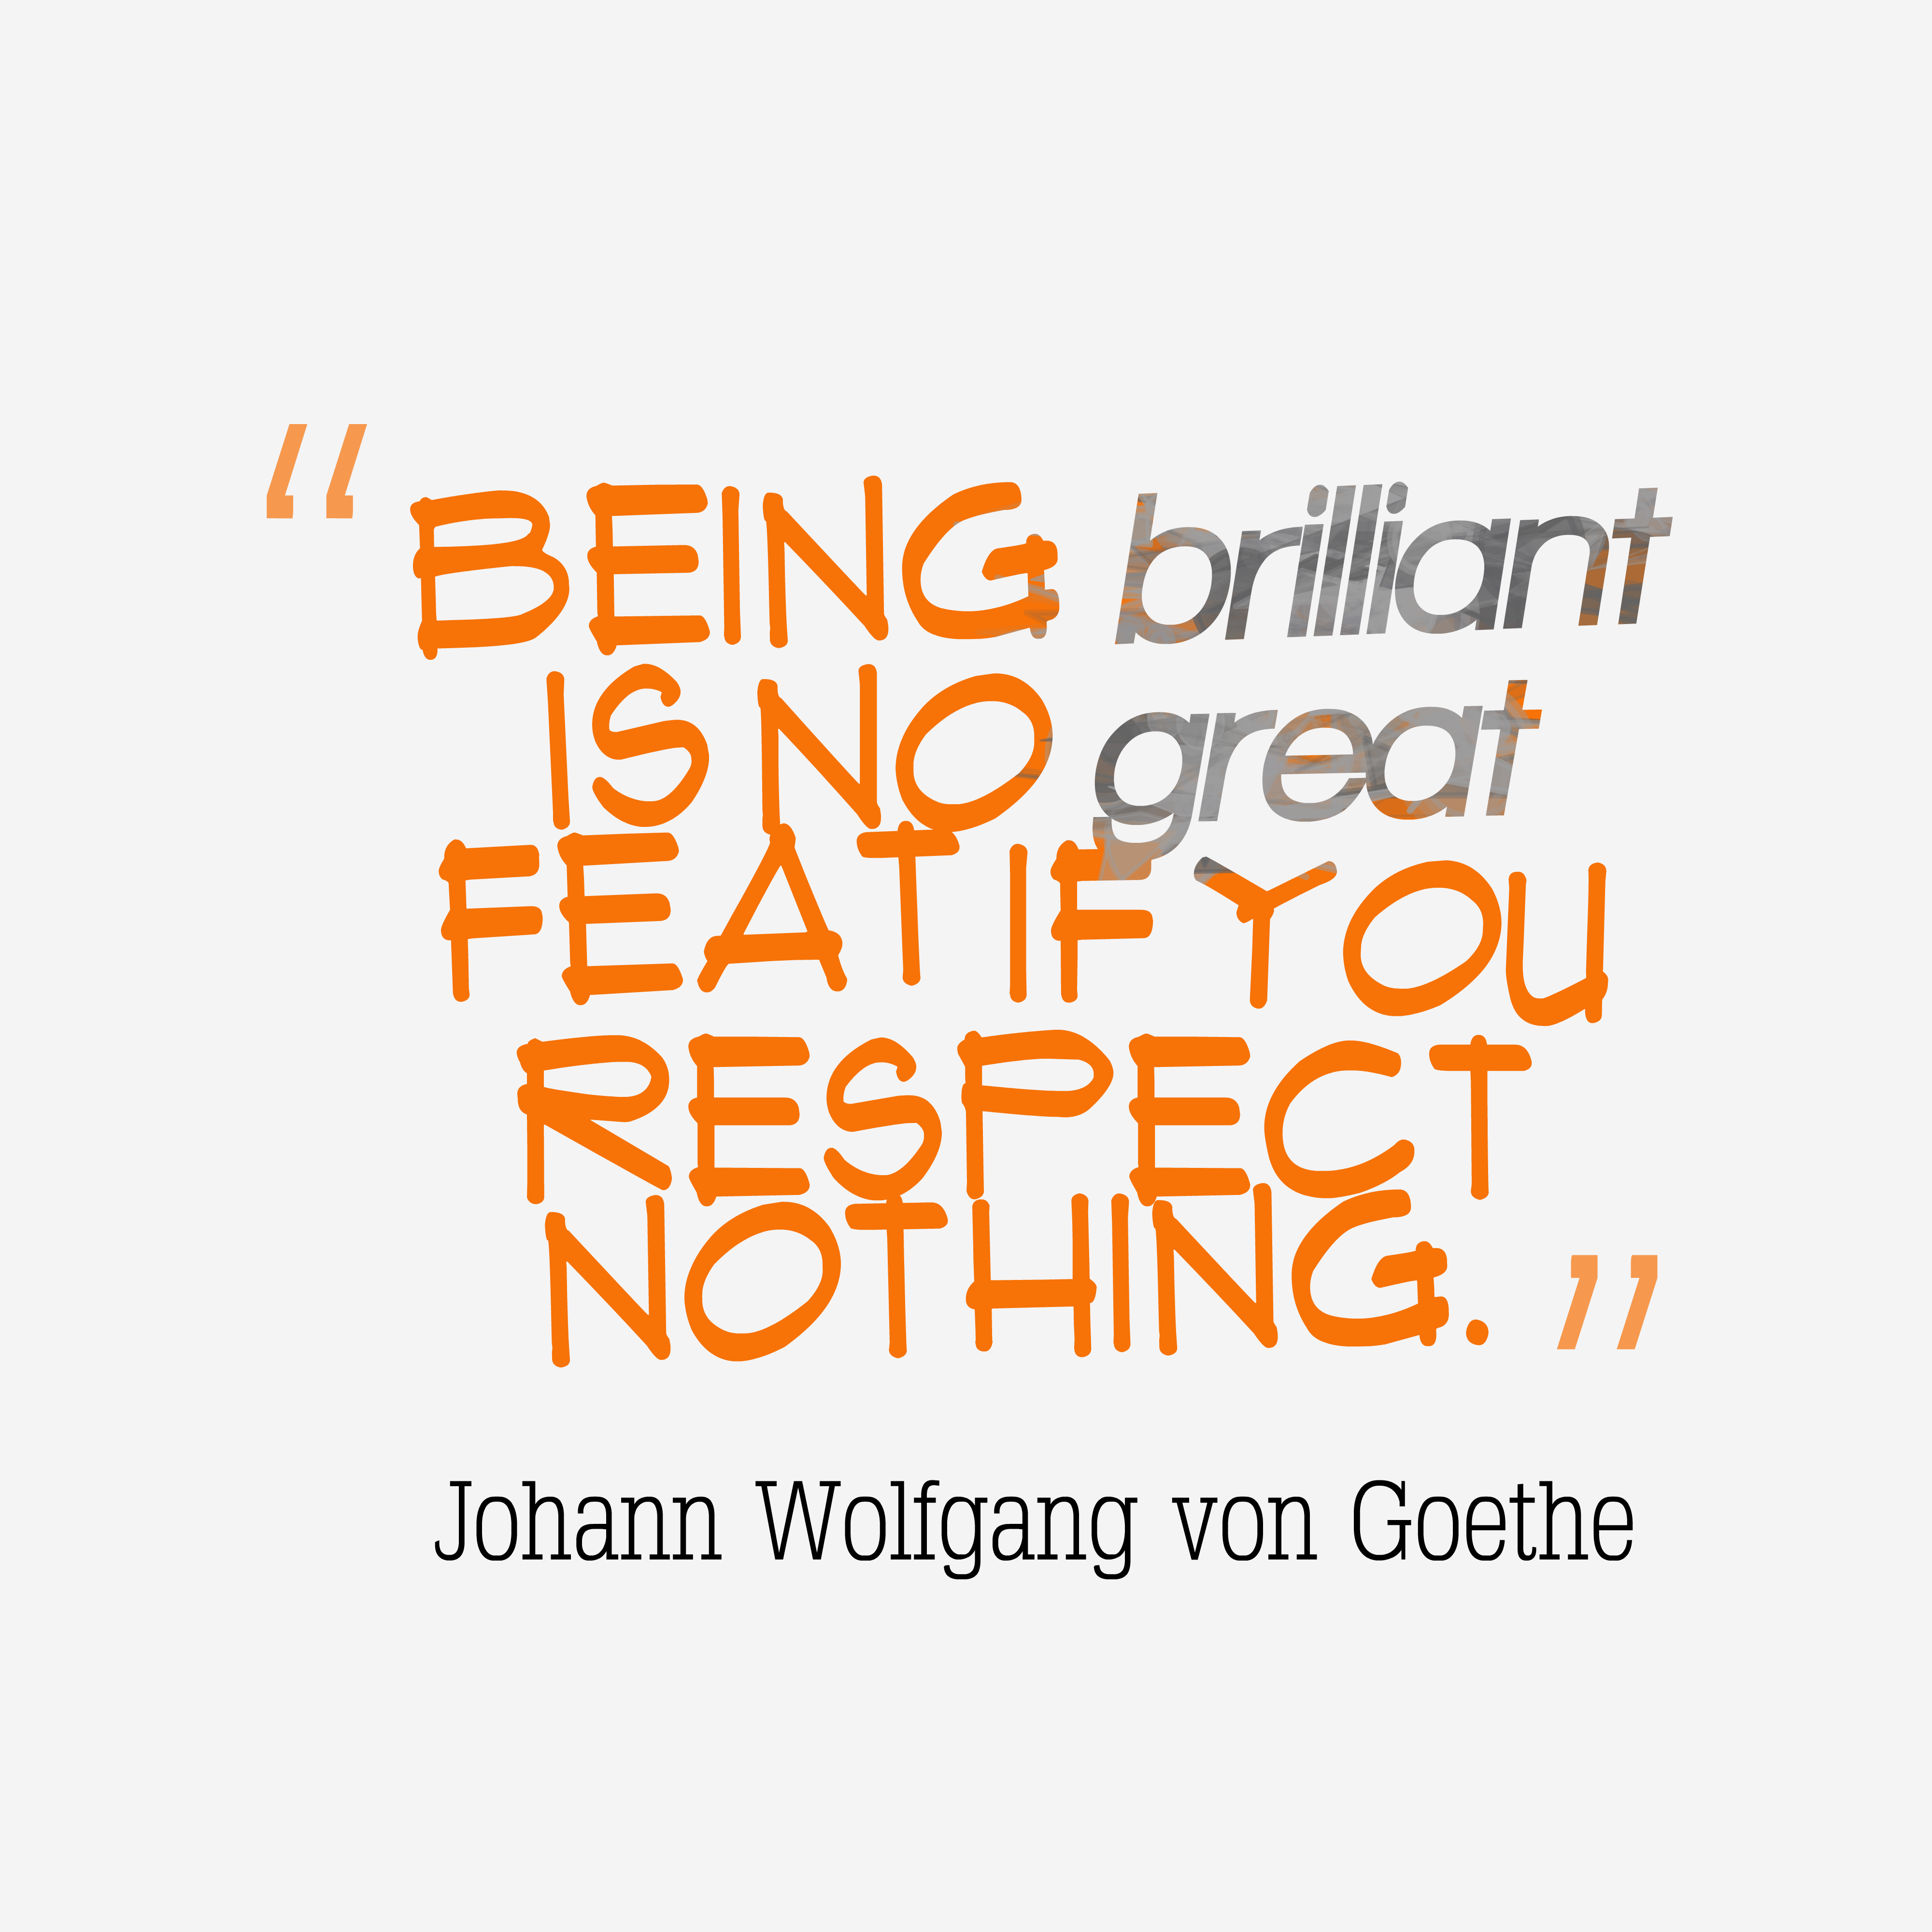 Brilliant Cute Quotes Download: Download High Resolution Quotes Picture Maker From Johann